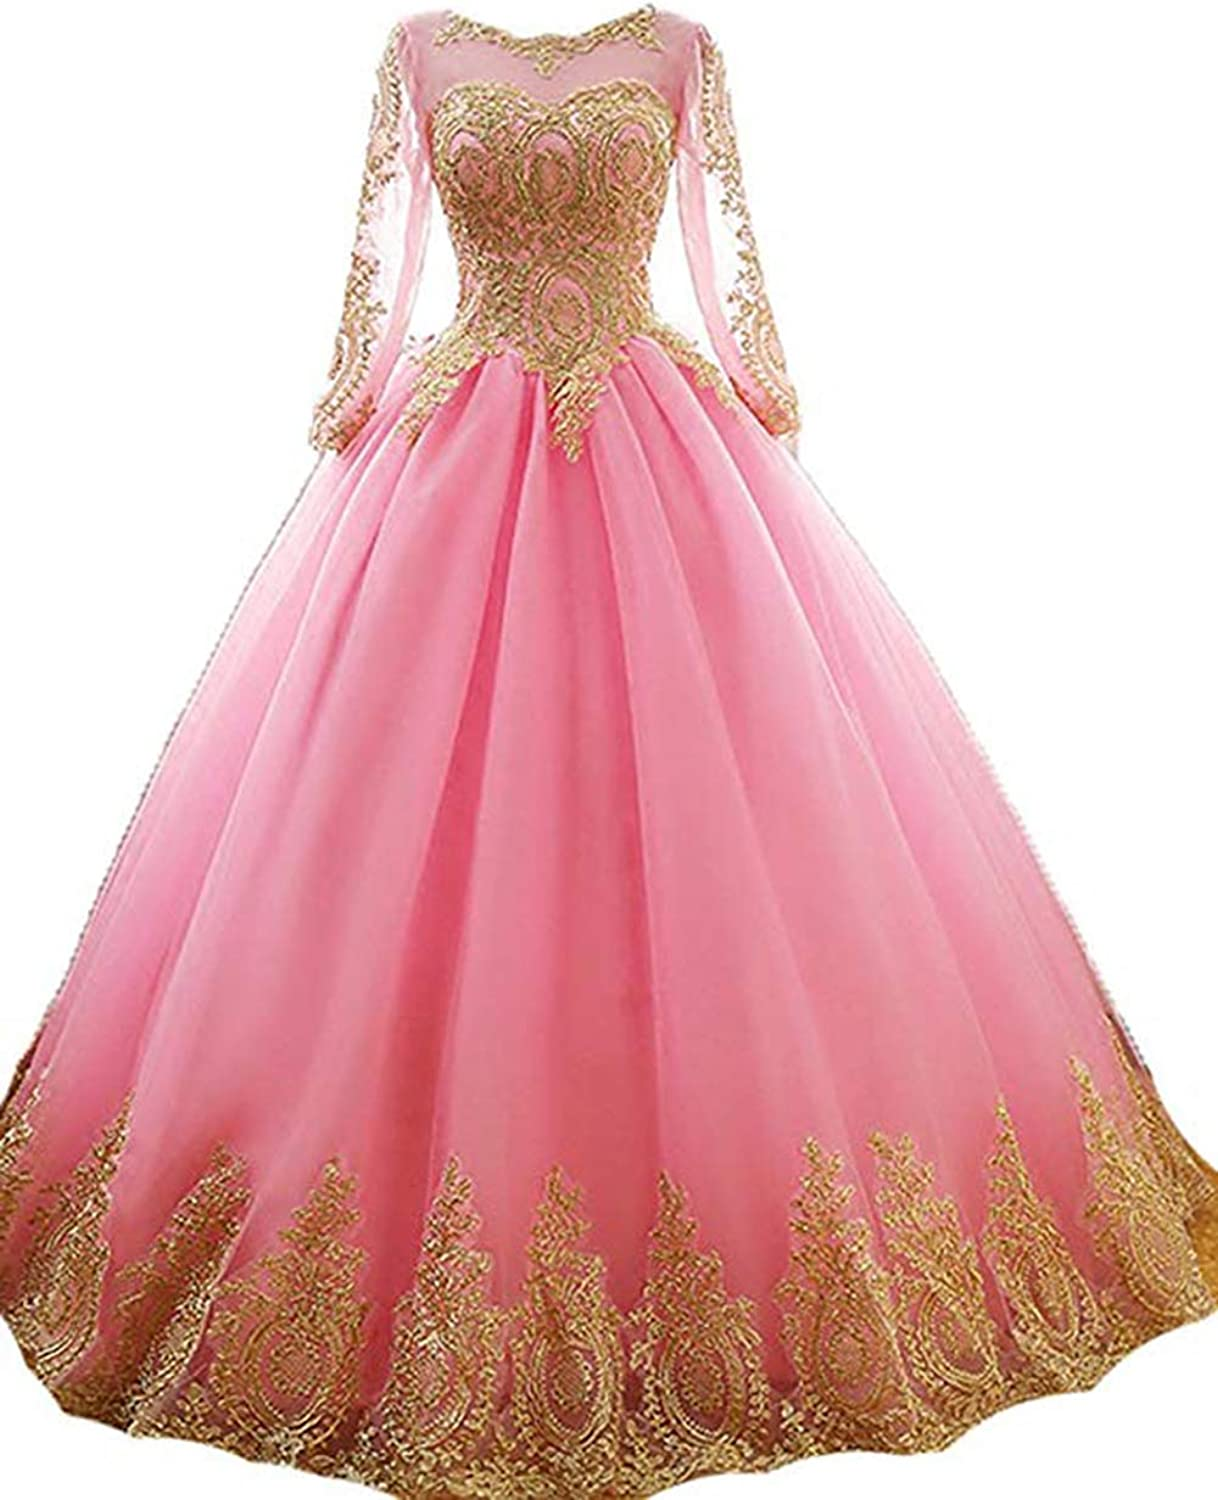 gold Lace Applique Quinceanera Dresses Long Sleeves Ball Gown Prom Dresses for Women